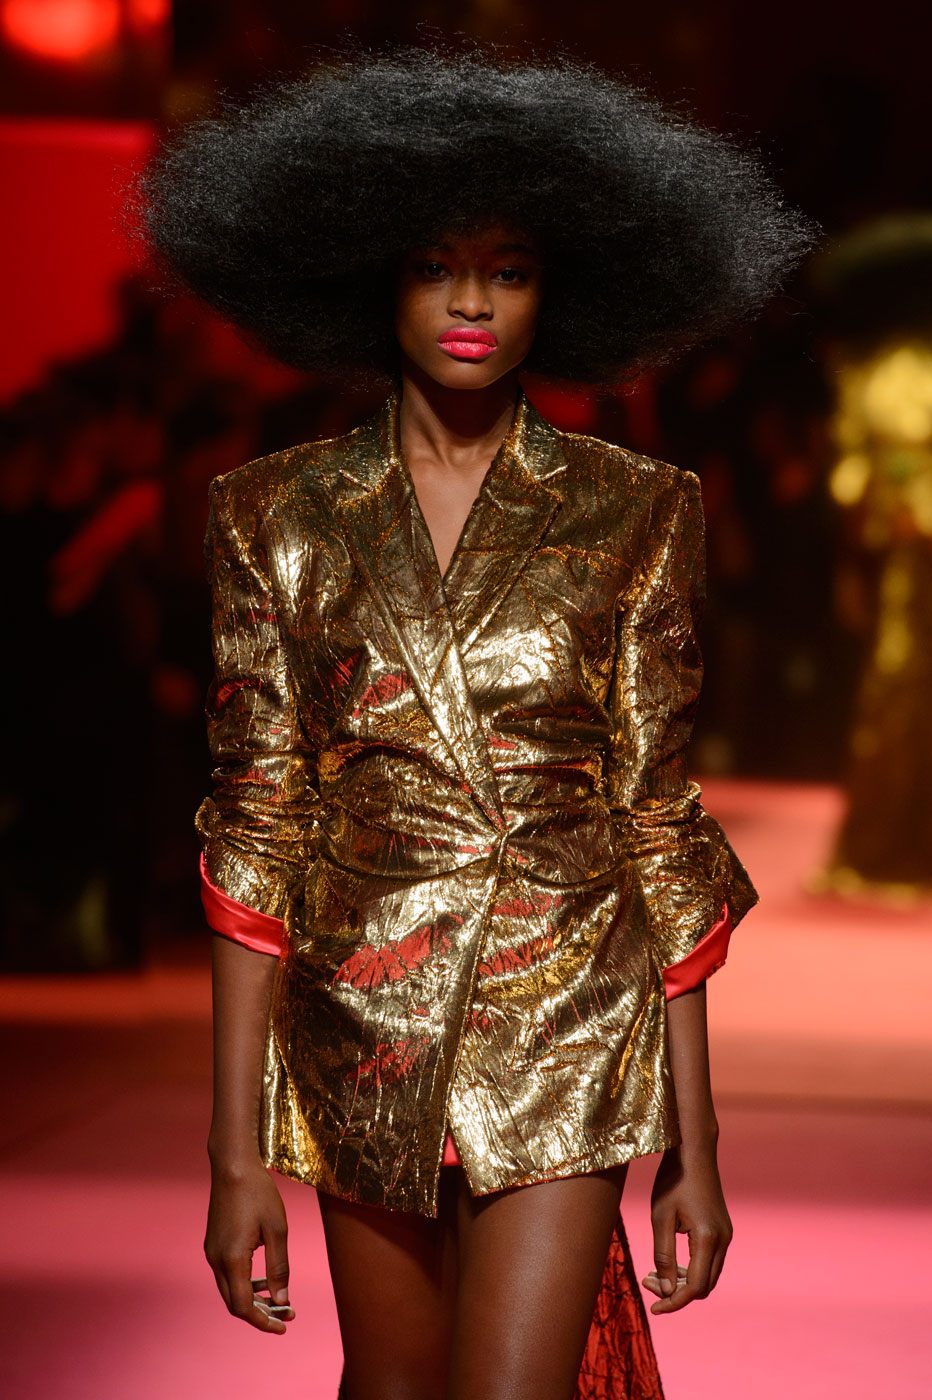 Schiaparelli-fashion-runway-show-haute-couture-paris-spring-summer-2015-the-impression-47